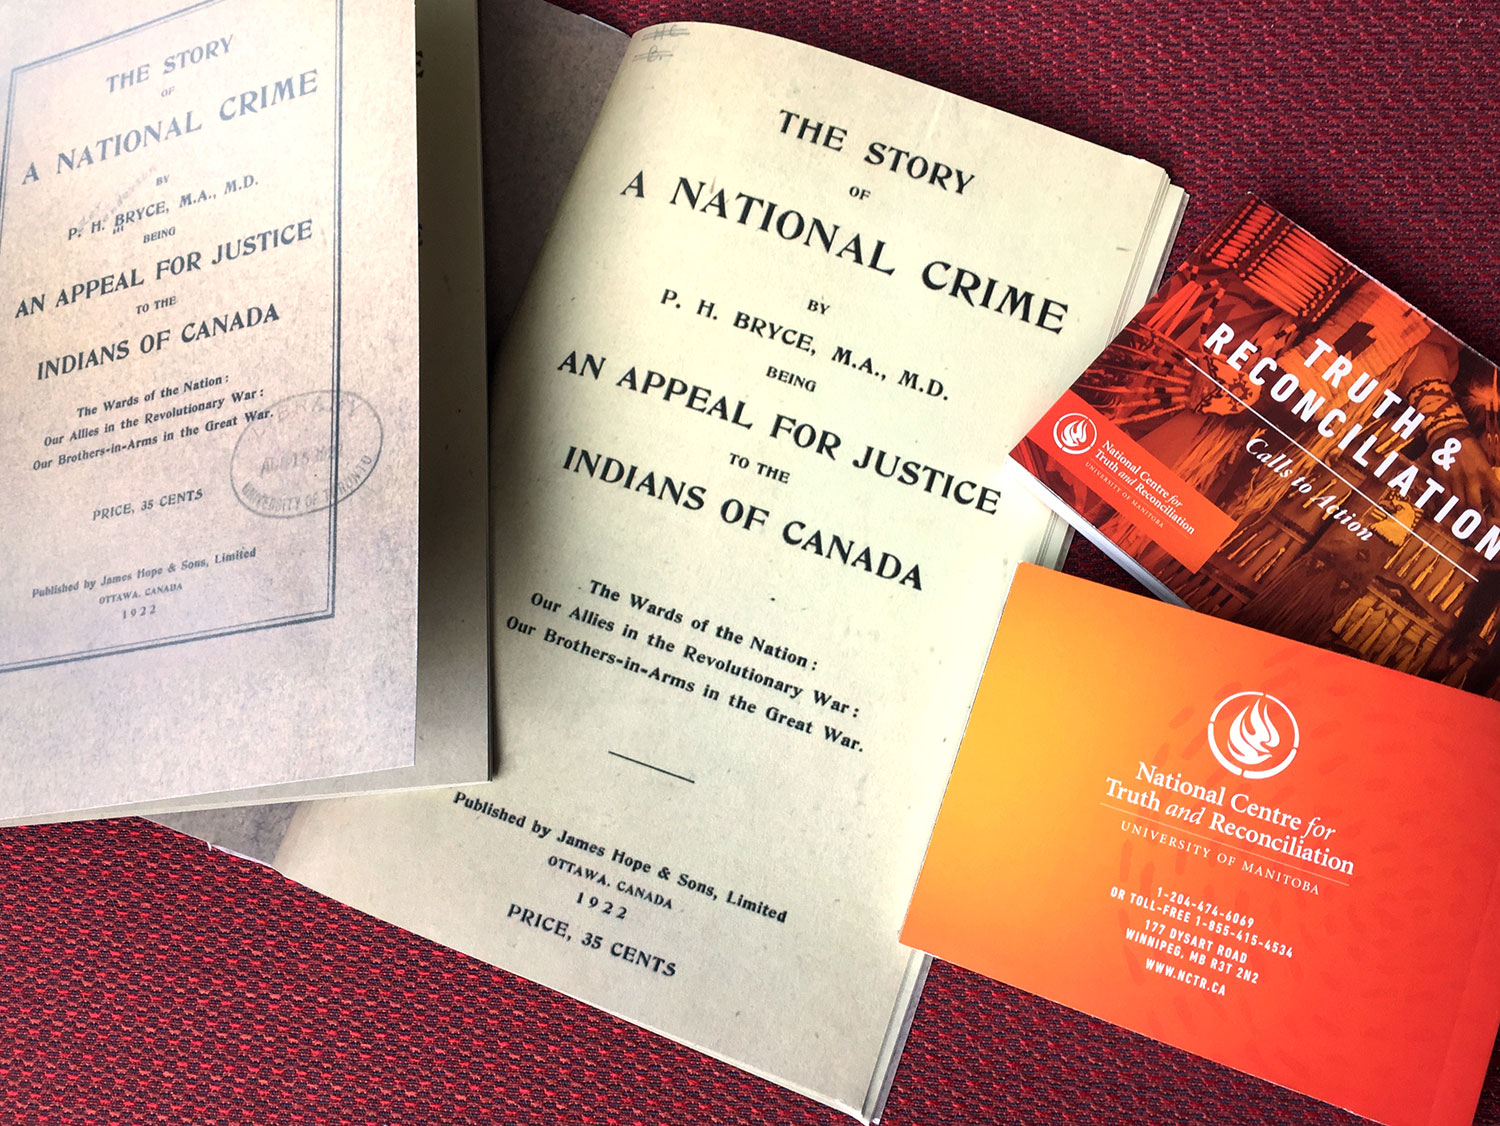 Copies of Dr. Bryce's ground-breaking 1922 report, the Truth & Reconciliation Commission's 10 principles of reconciliation, 94 calls to action, and the 46 articles of the United Nations Declaration on the Rights of Indigenous Peoples were made available to attendees of the exhibit launch.